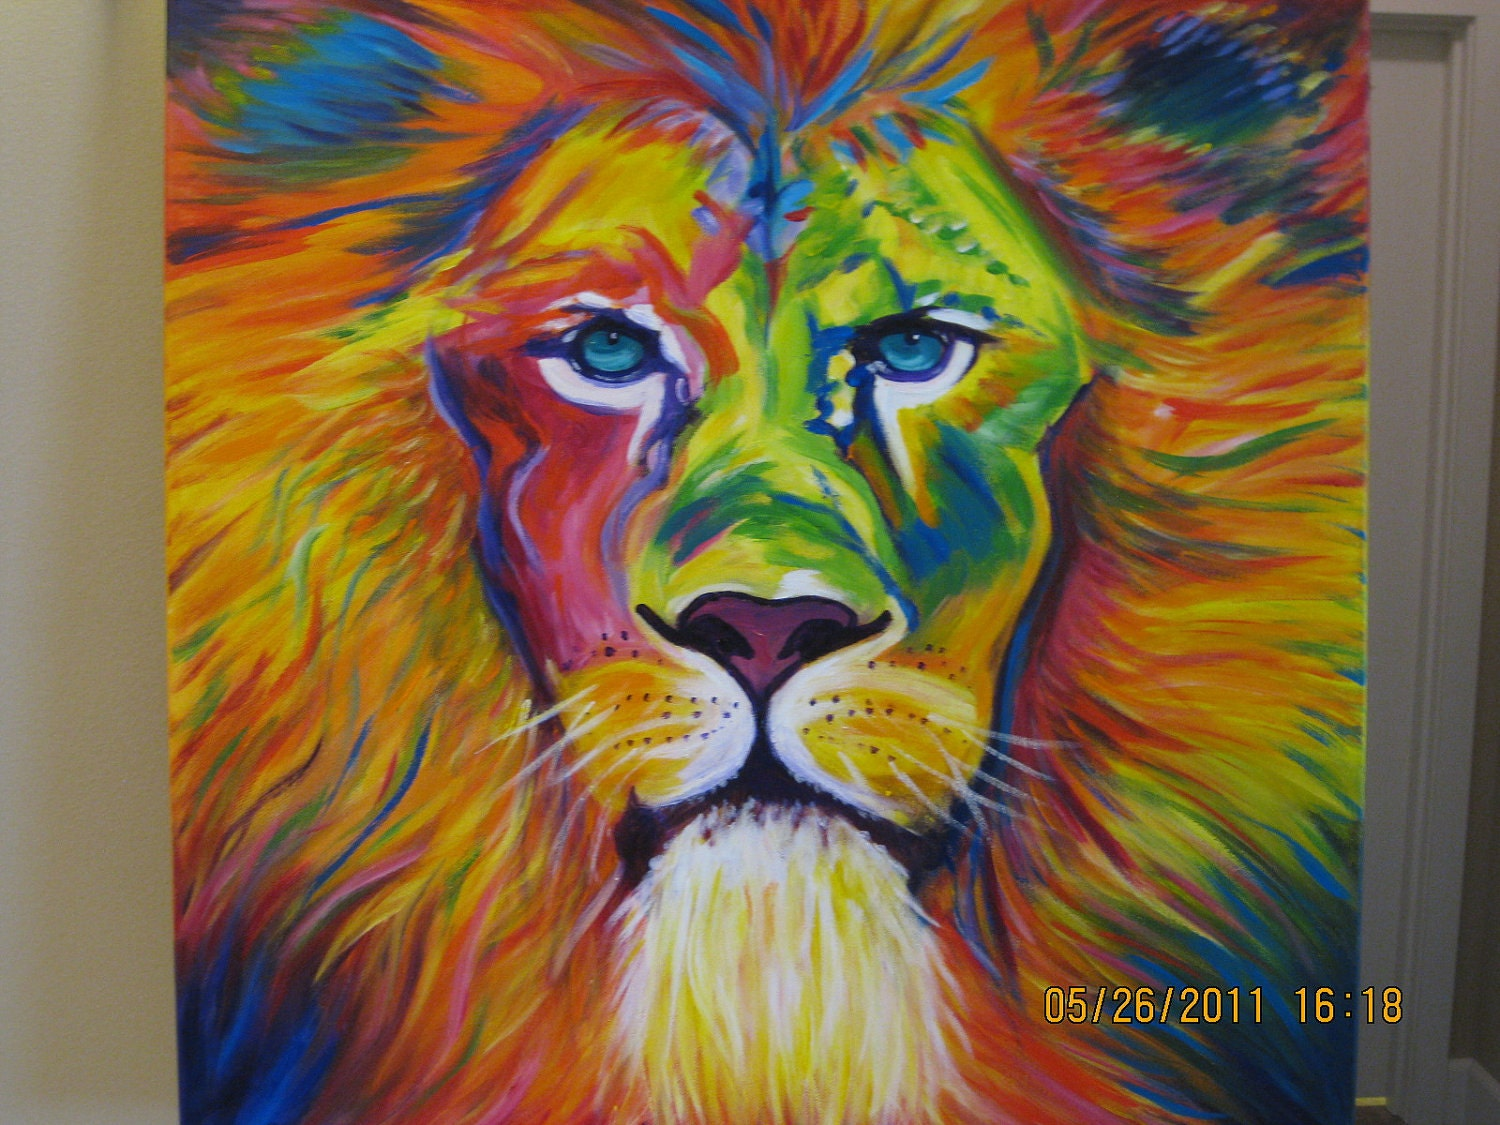 Colorful lion painting - photo#7